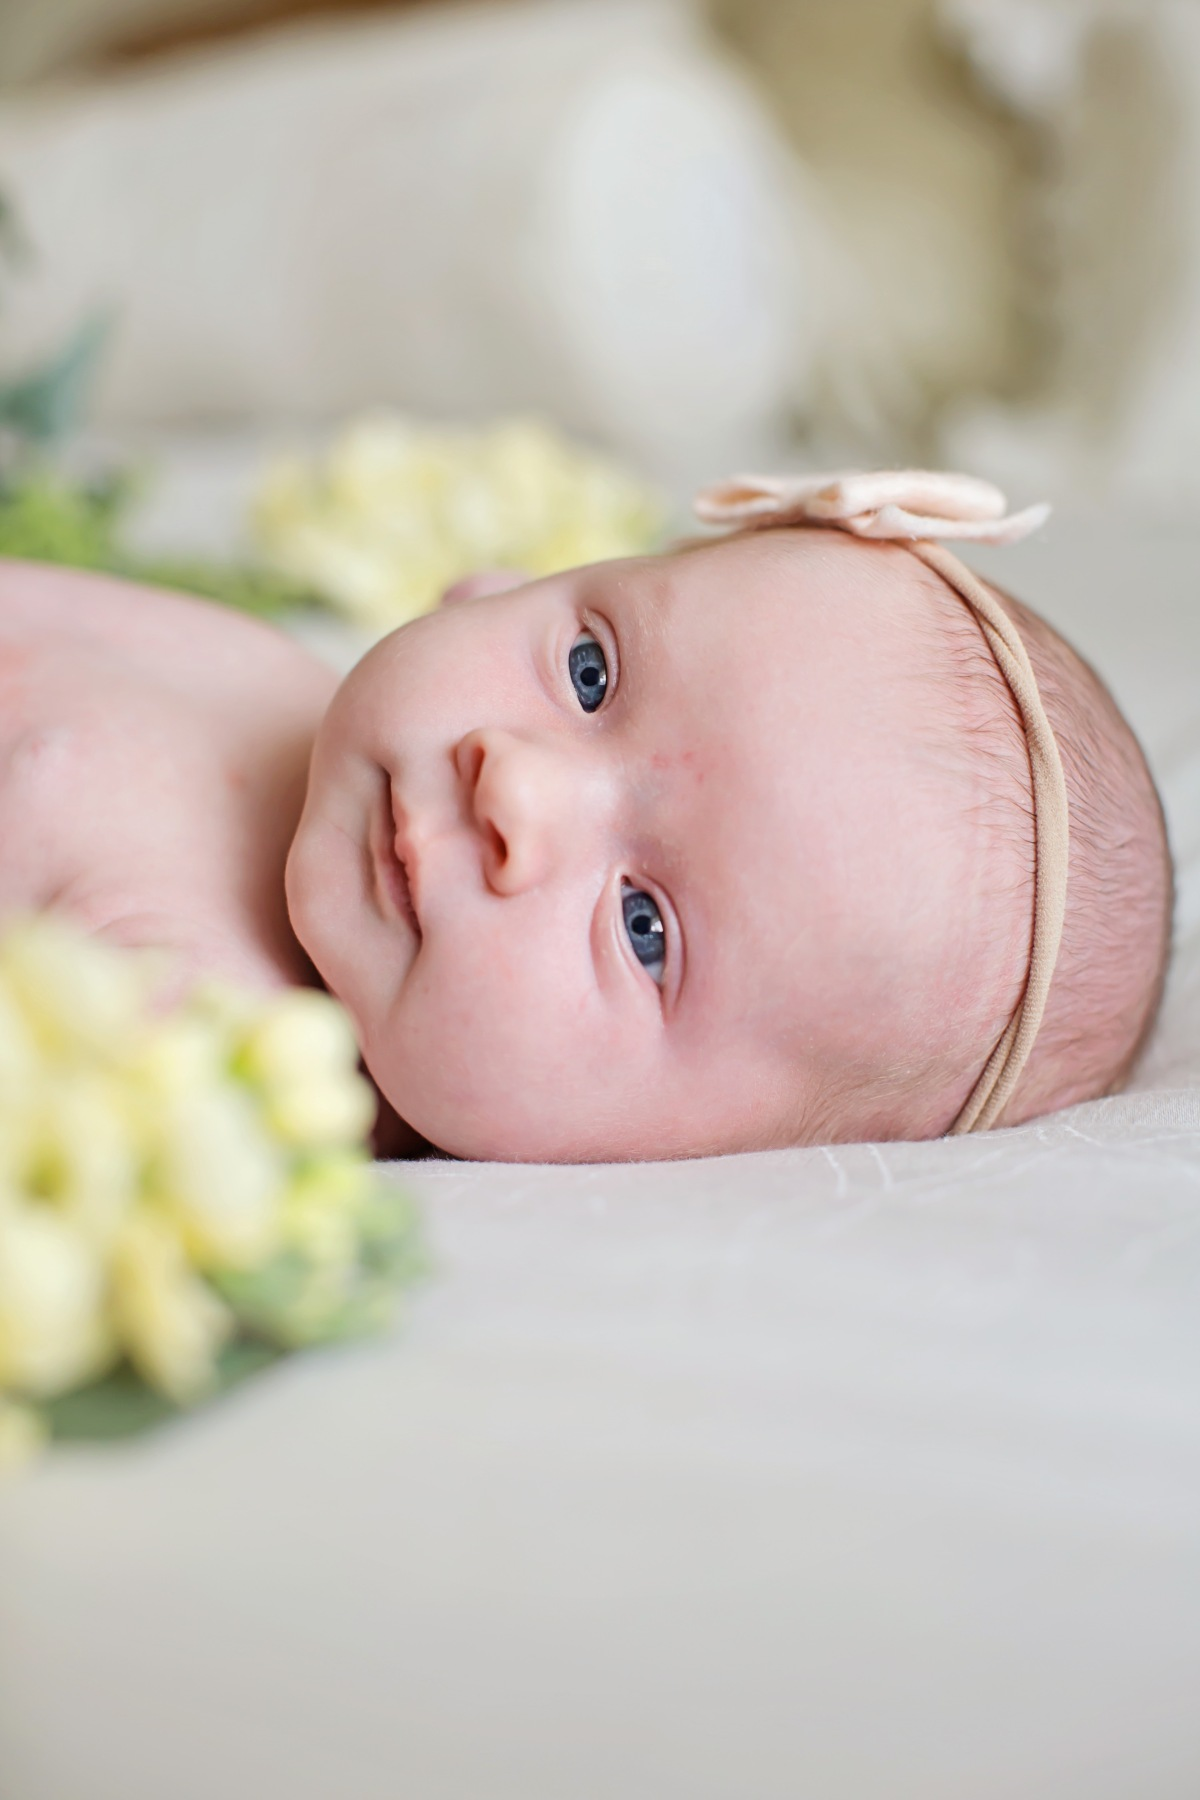 #Capturingessencephotography, #birthphotography, #newbornphotography